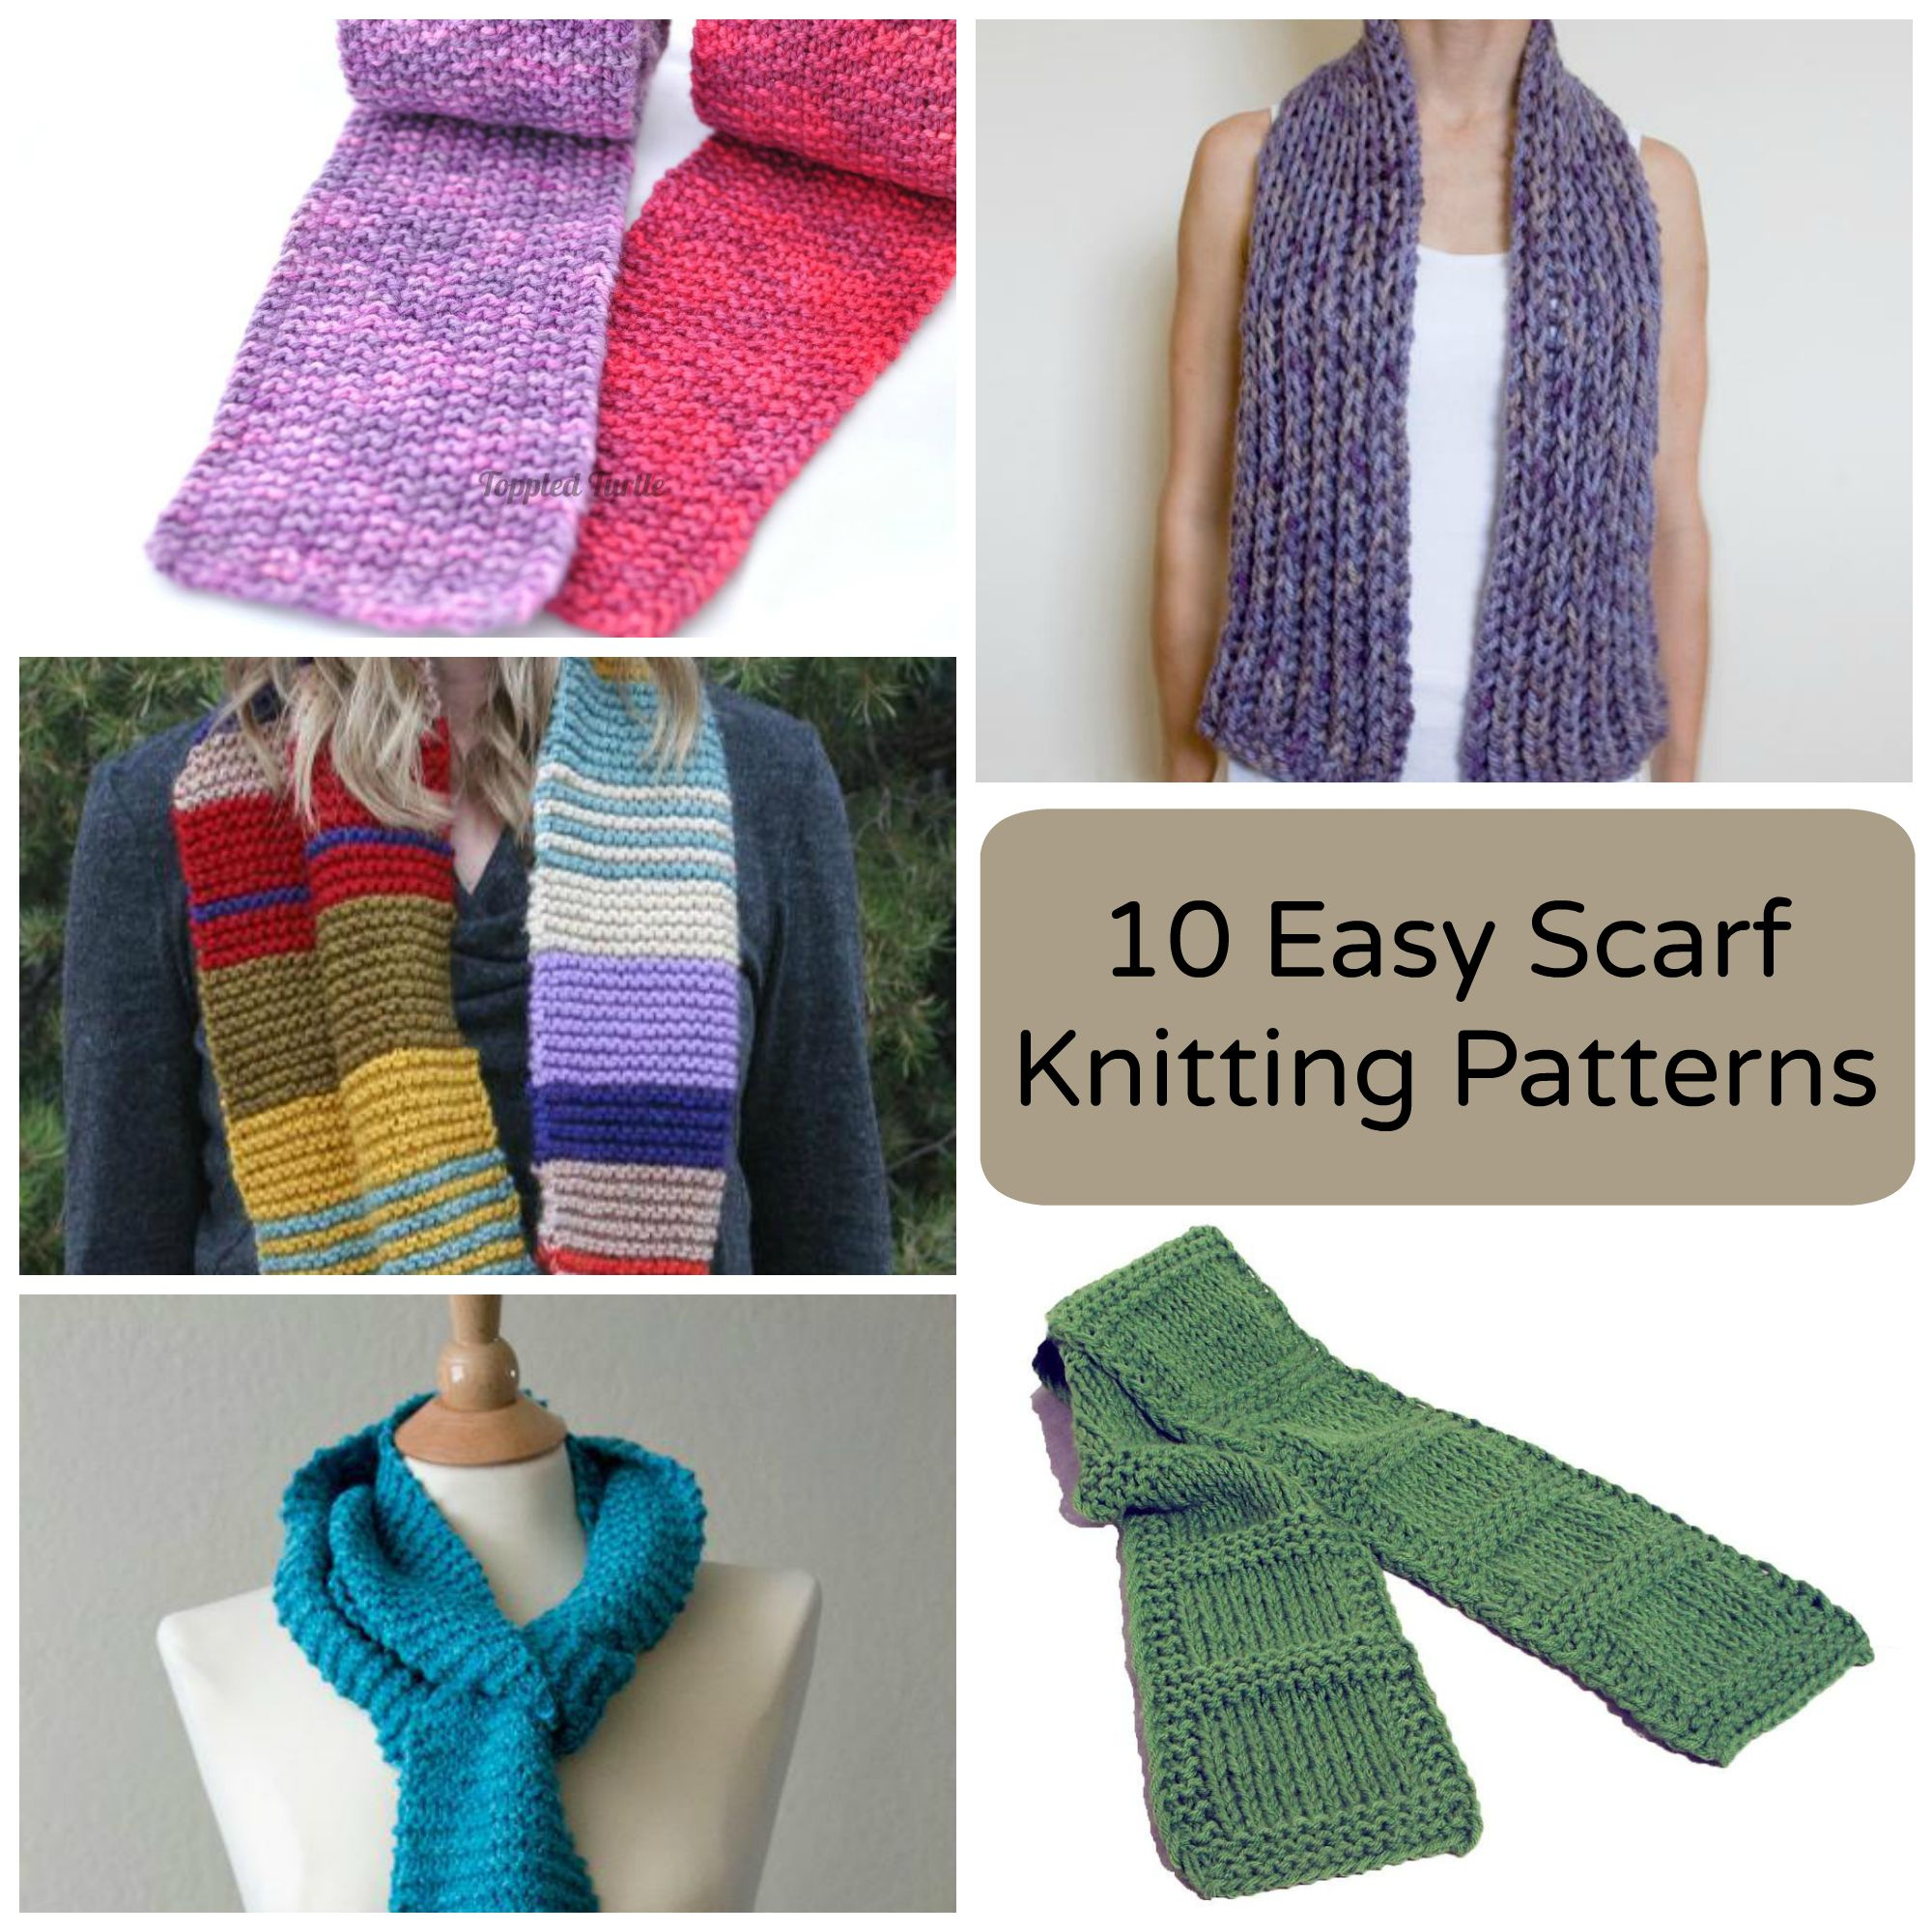 Knitting Patterns Easy Scarf 10 Easy Scarf Knitting Patterns For Beginners